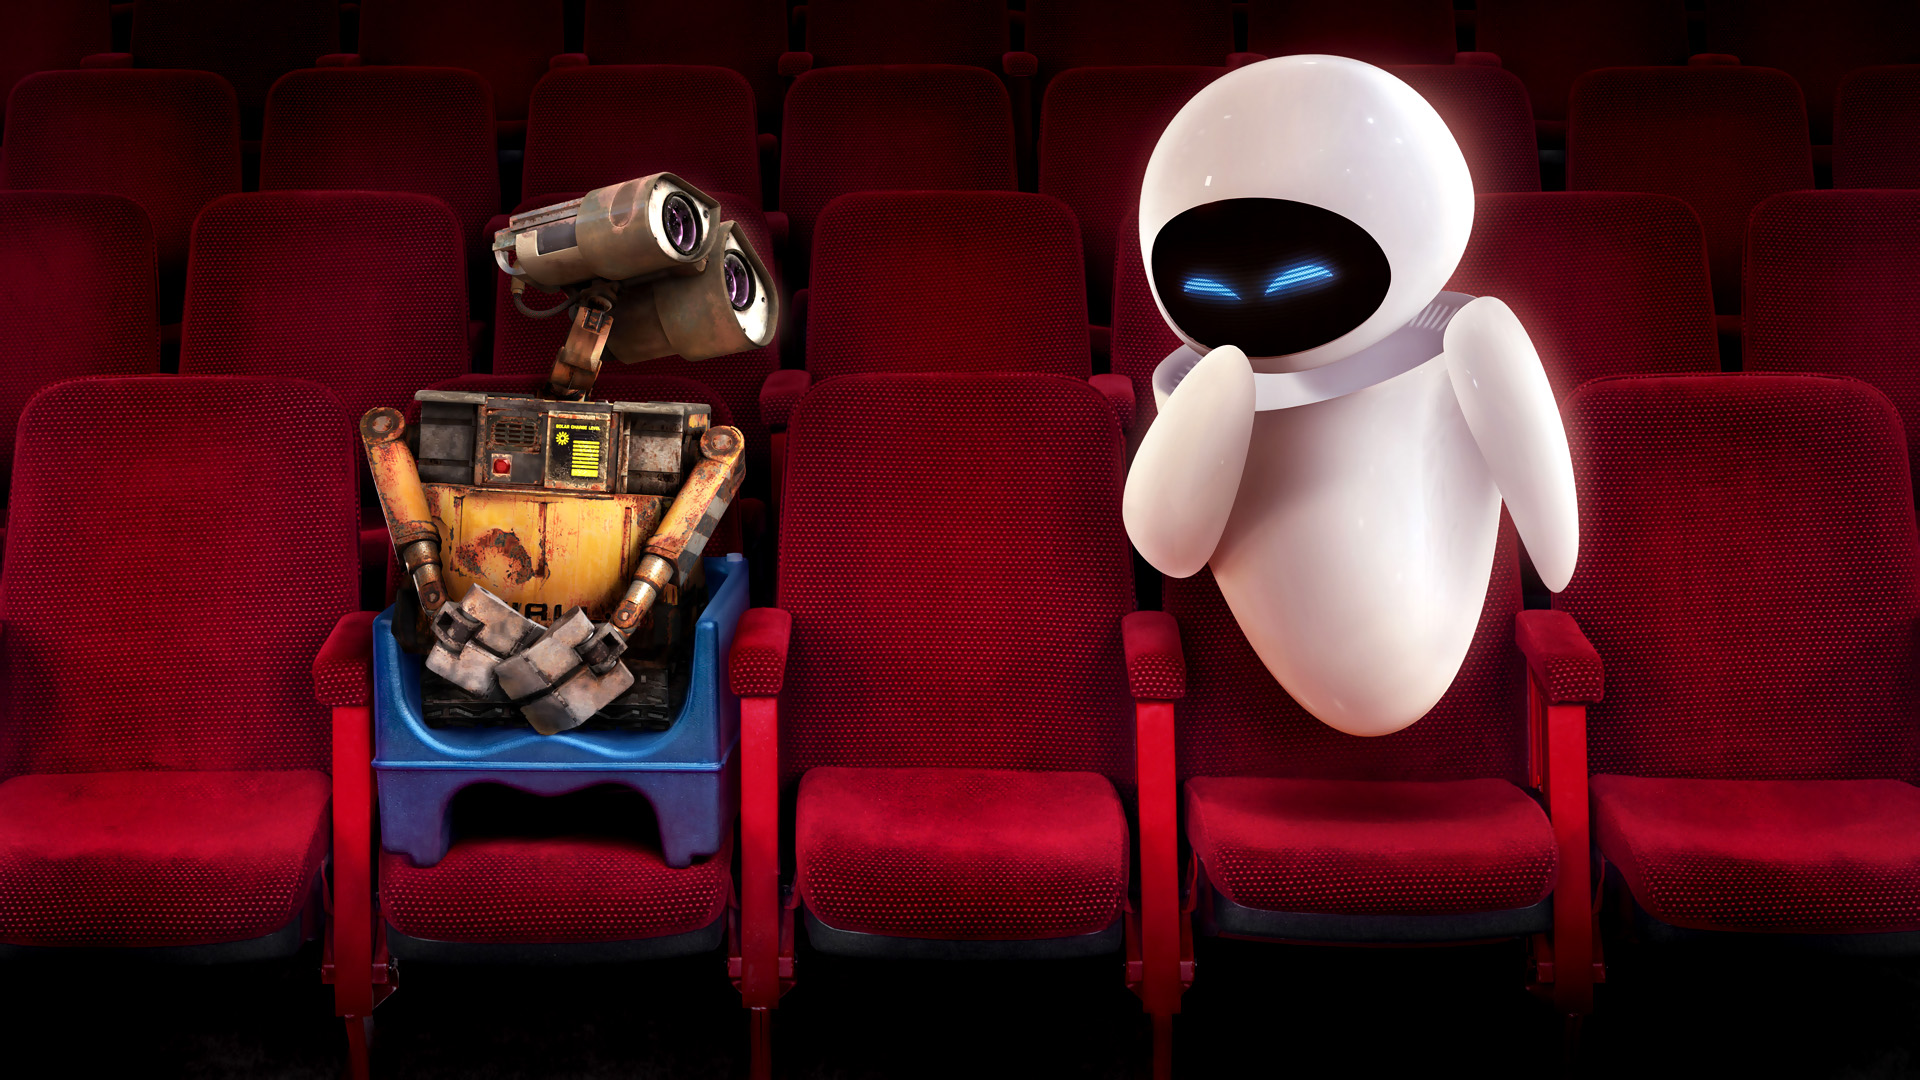 wall e romance, hd movies, 4k wallpapers, images, backgrounds